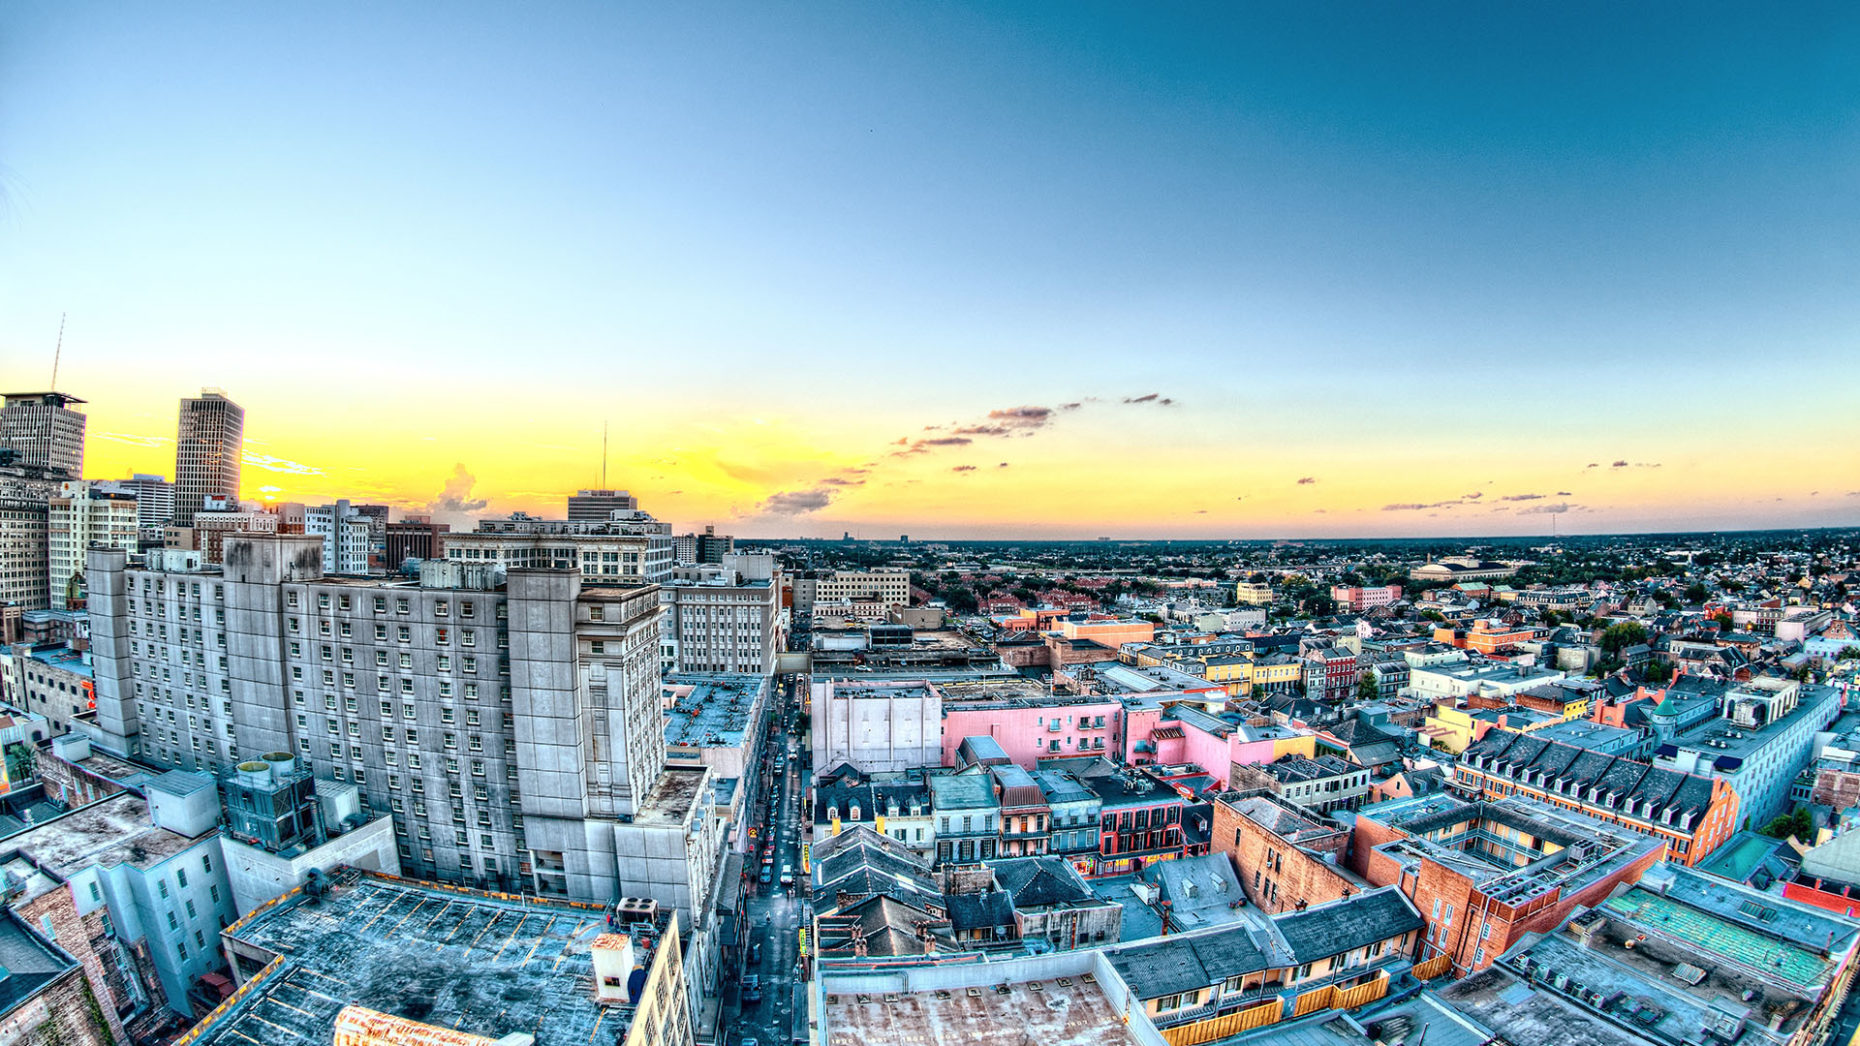 Download Colorful New Orleans Wallpaper 1920x1080